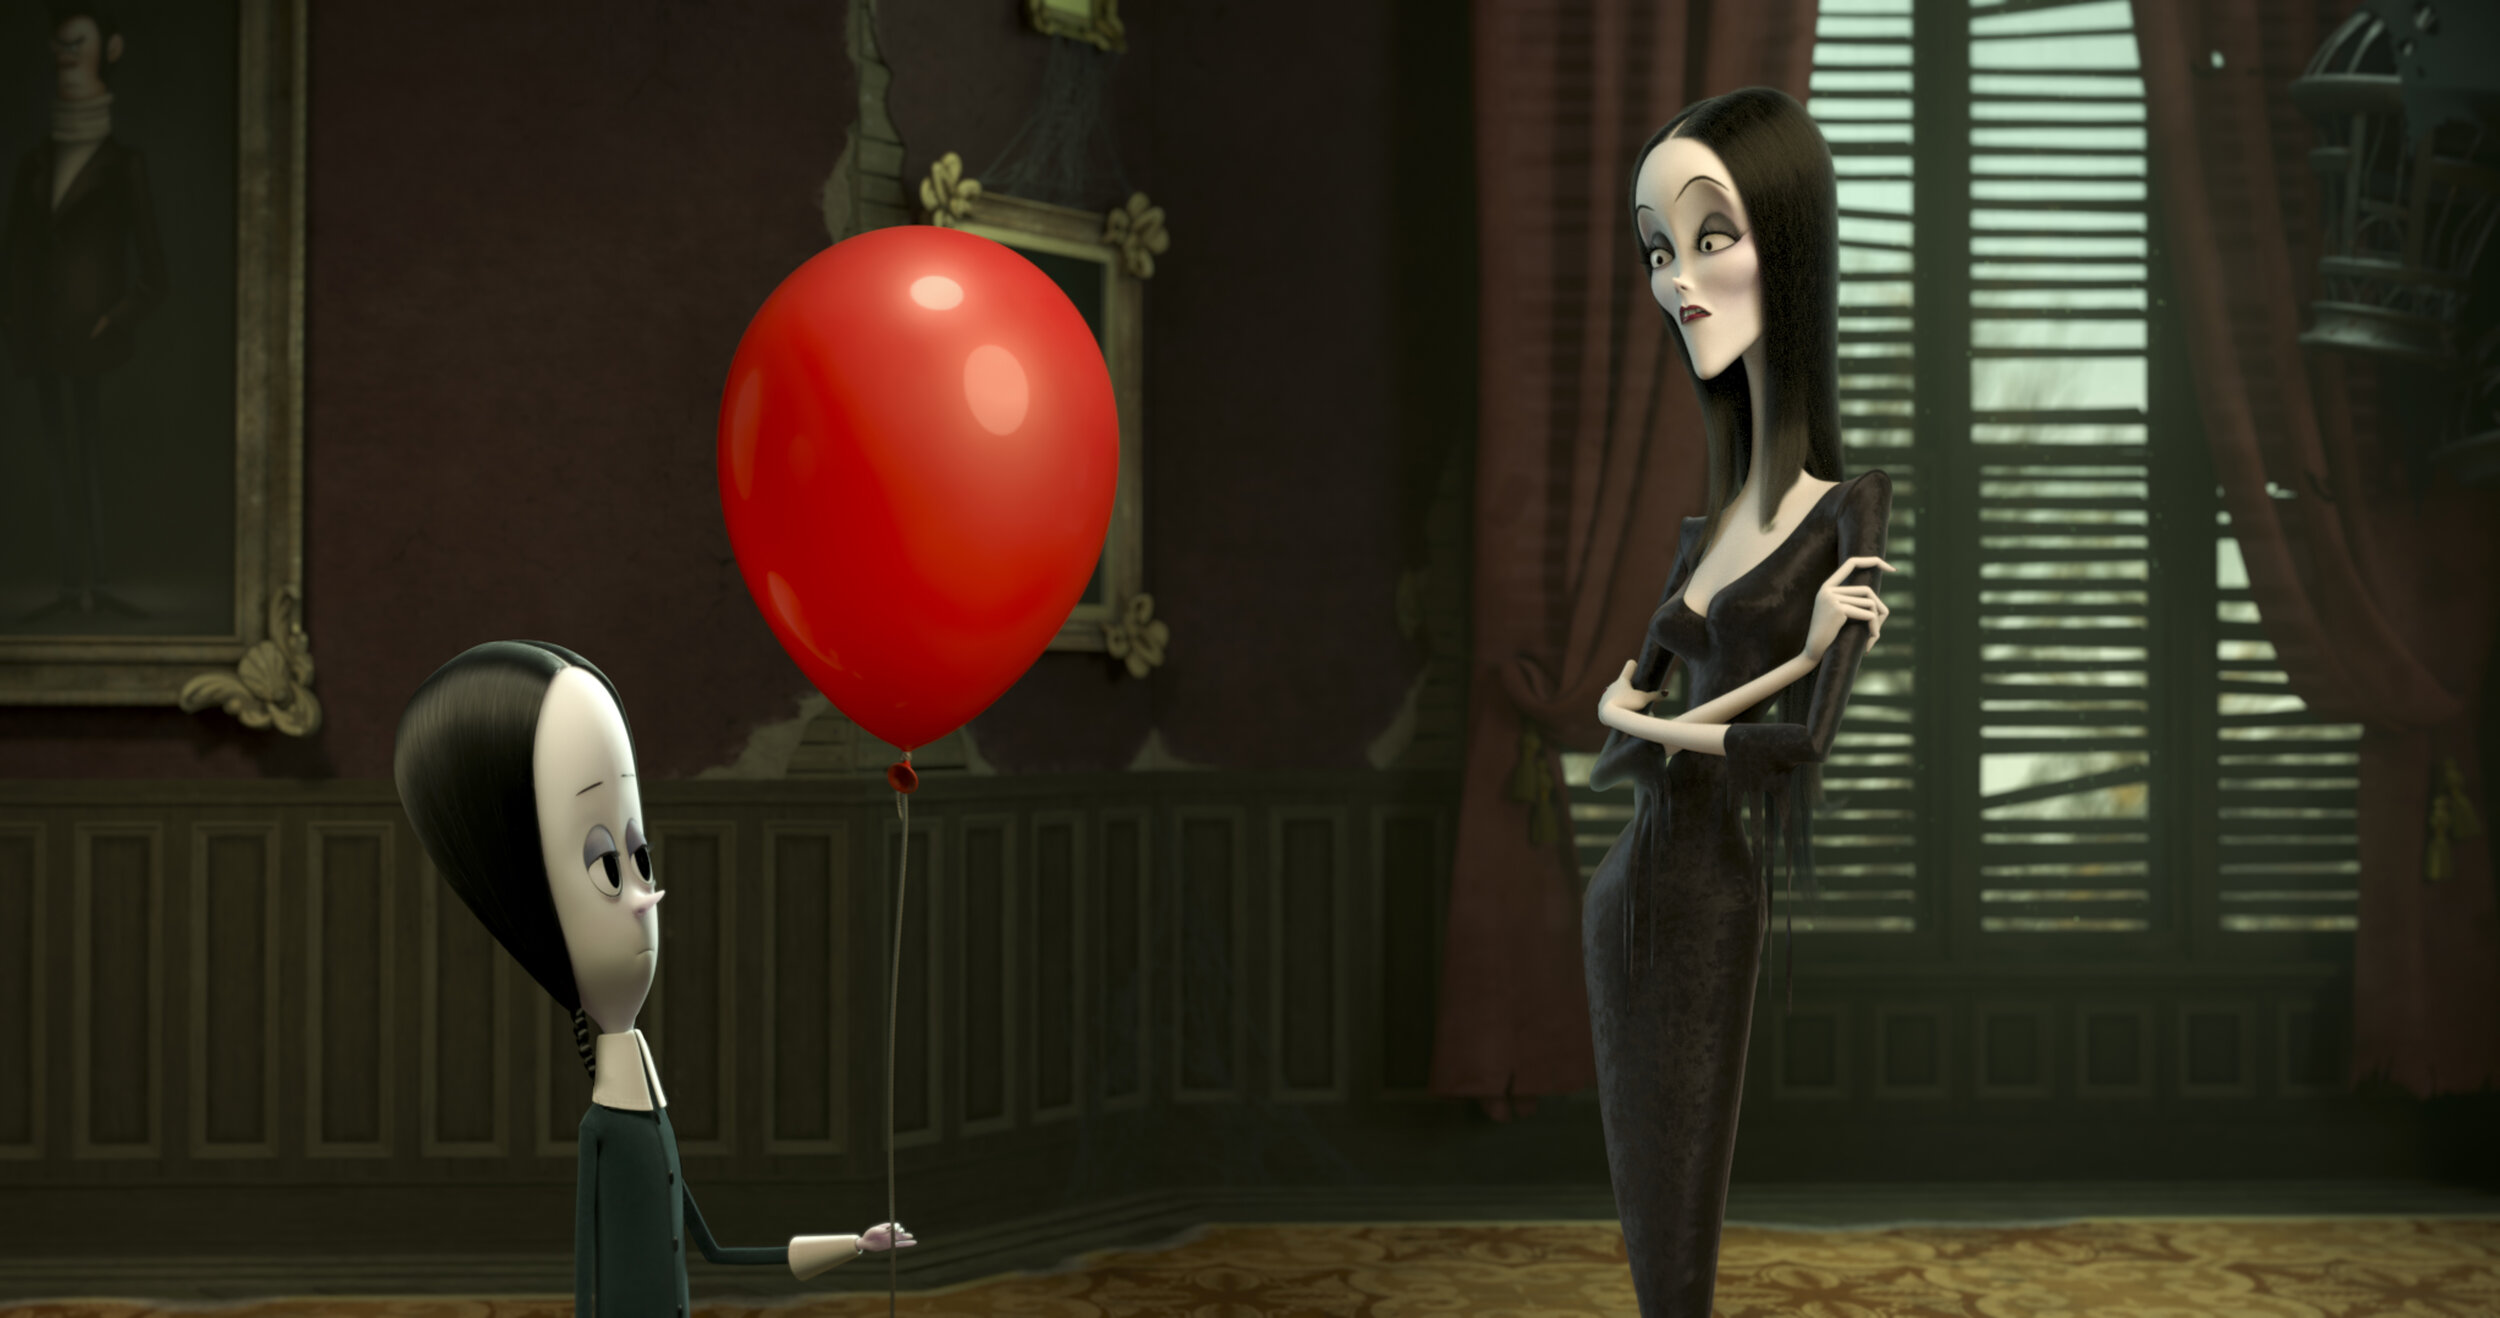 """Wednesday, left (voiced by Chloë Grace Moretz), presents her mother, Morticia (voiced by Charlize Theron), with an odd human artifact, in a scene from the animated """"The Addams Family."""" (Image courtesy MGM Pictures.)"""